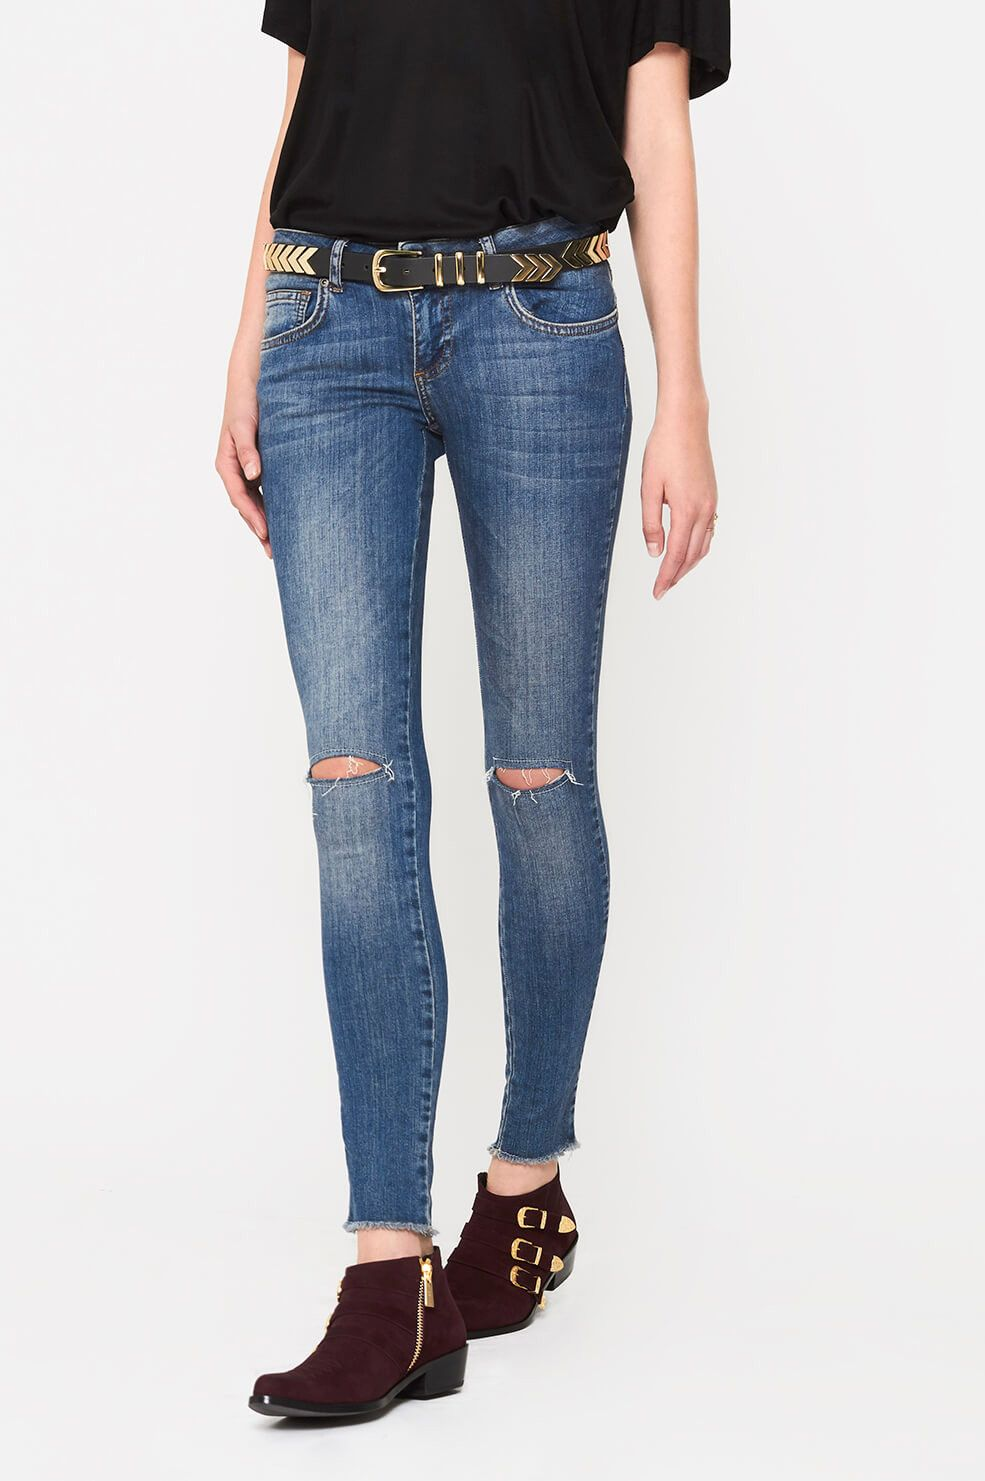 For Sale Cheap Price Cheap Sale Sneakernews high waisted skinny jeans - Grey Anine Bing N4KNVq